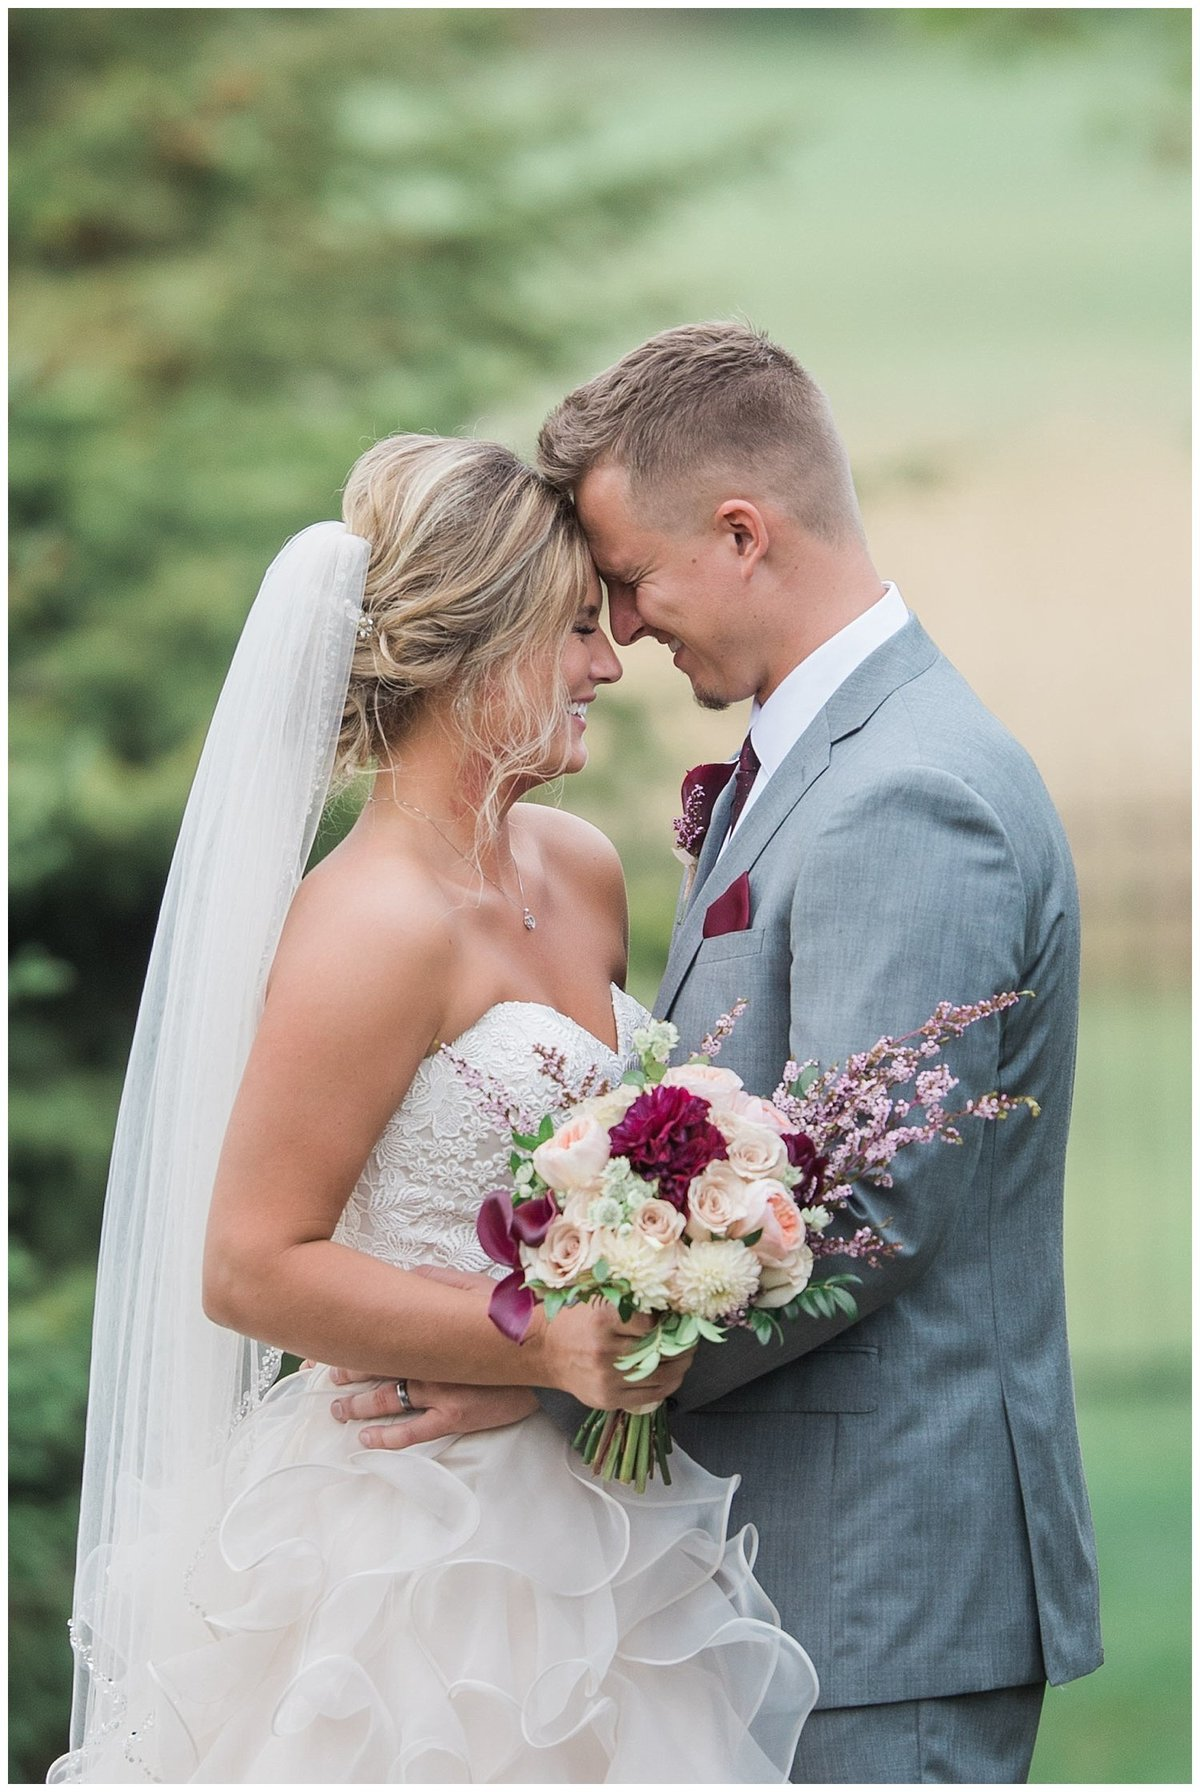 Romantic Wedding - South Dakota Wedding - Midwest Wedding_0311